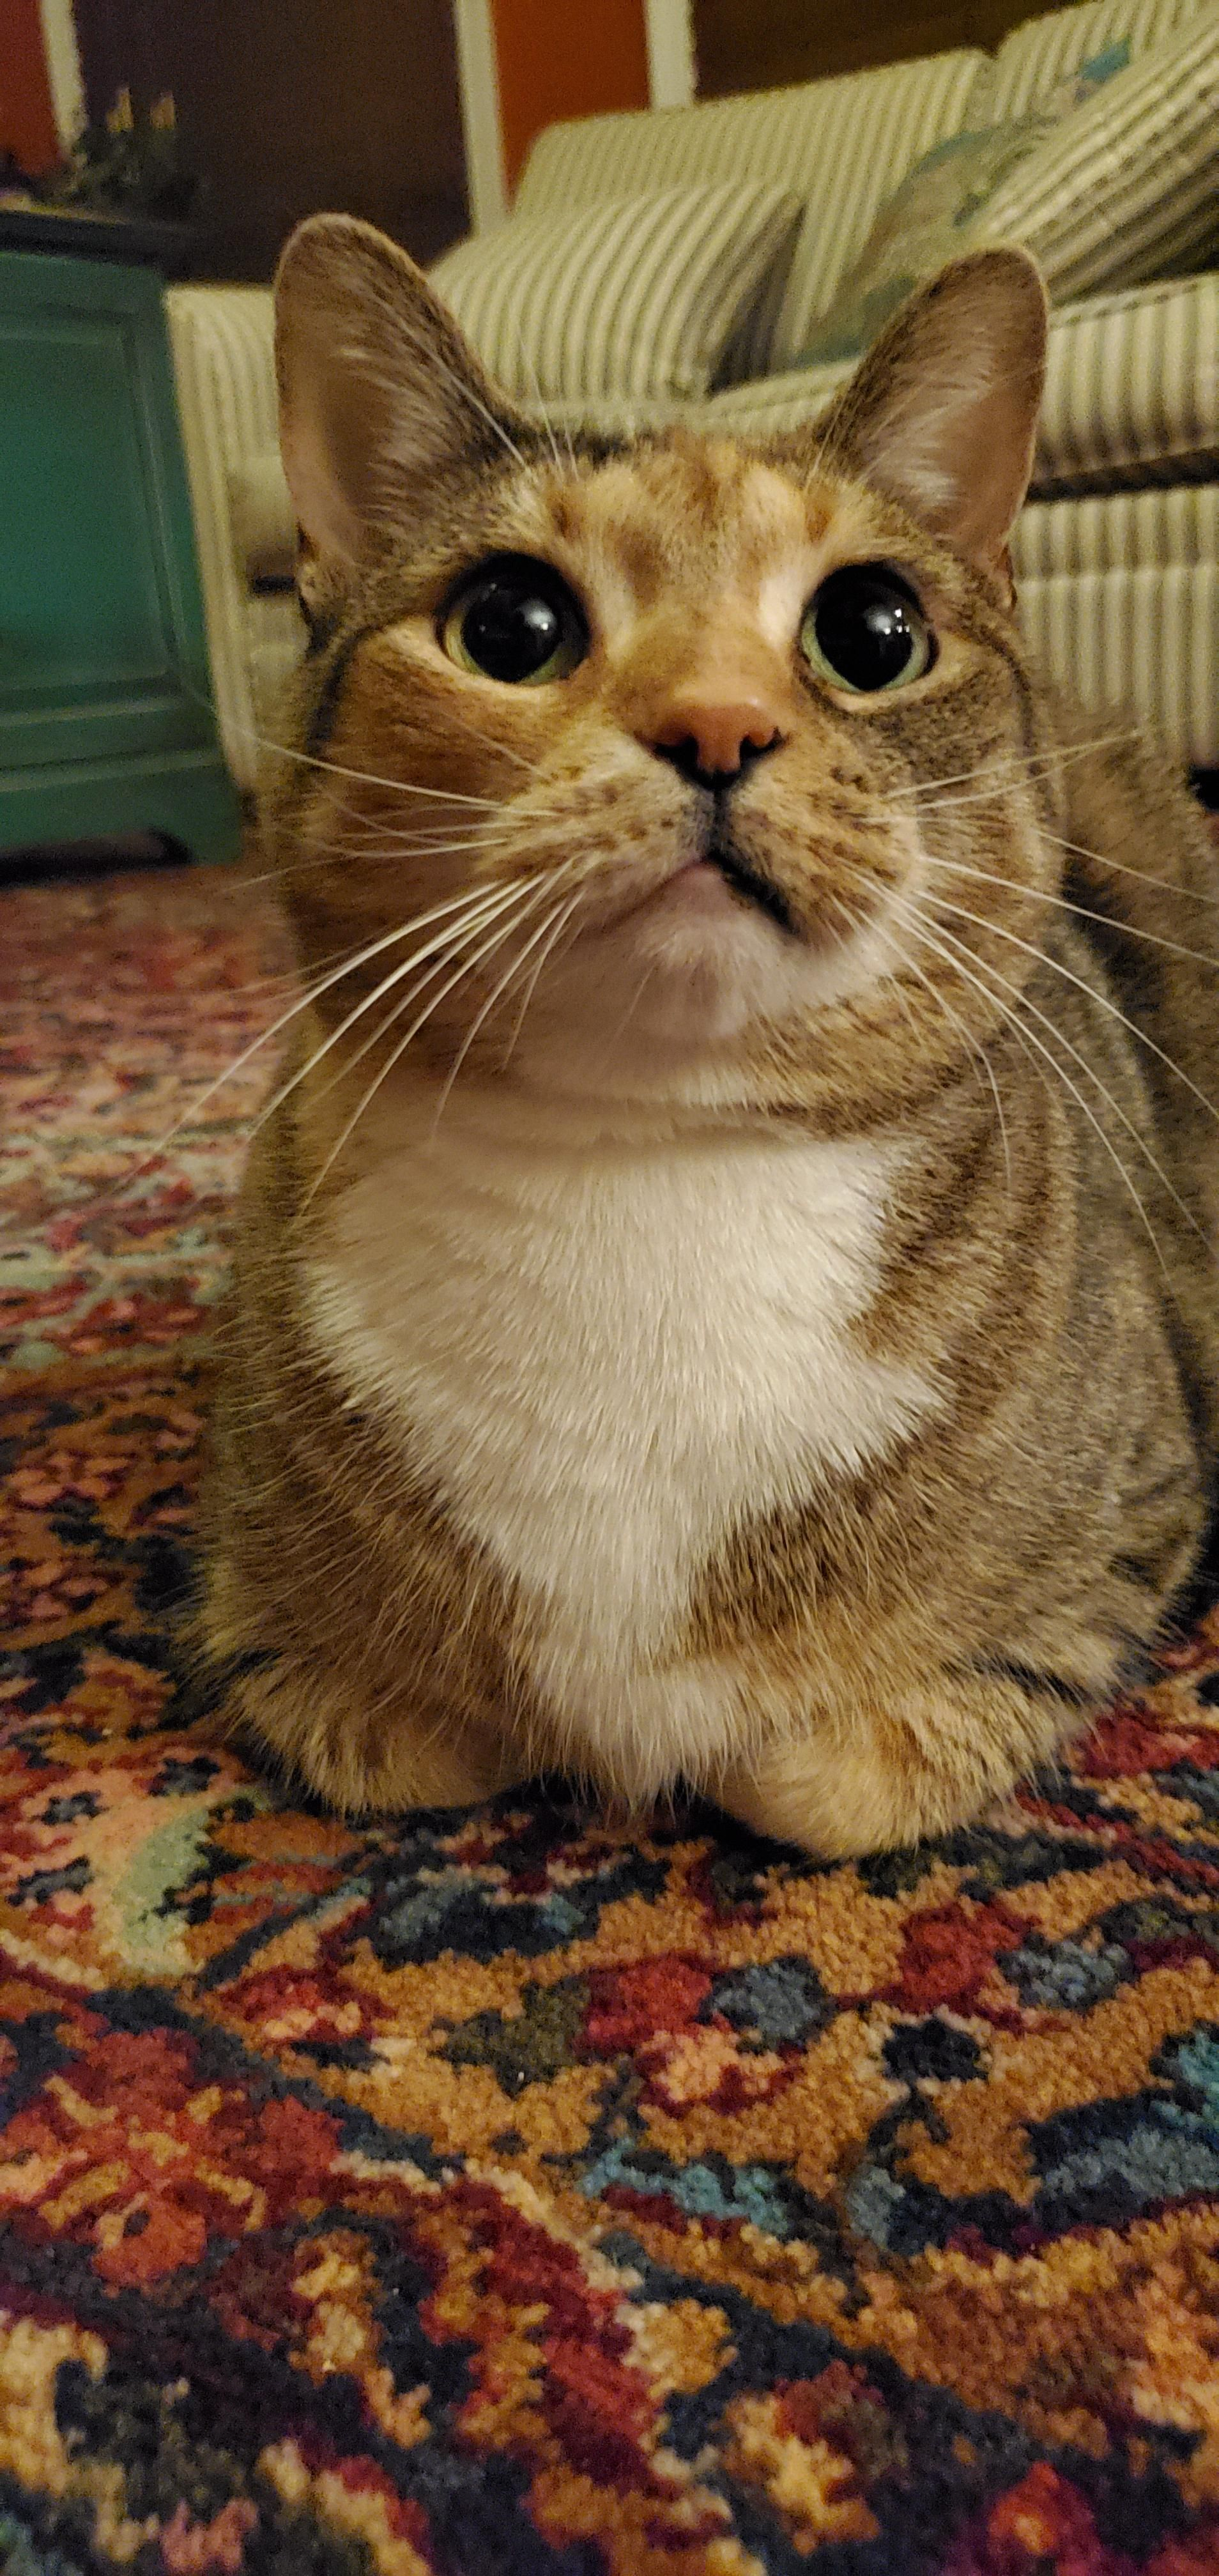 Get A Loaf Of Bertha Cute Animals Cute Funny Animals Cats Kittens